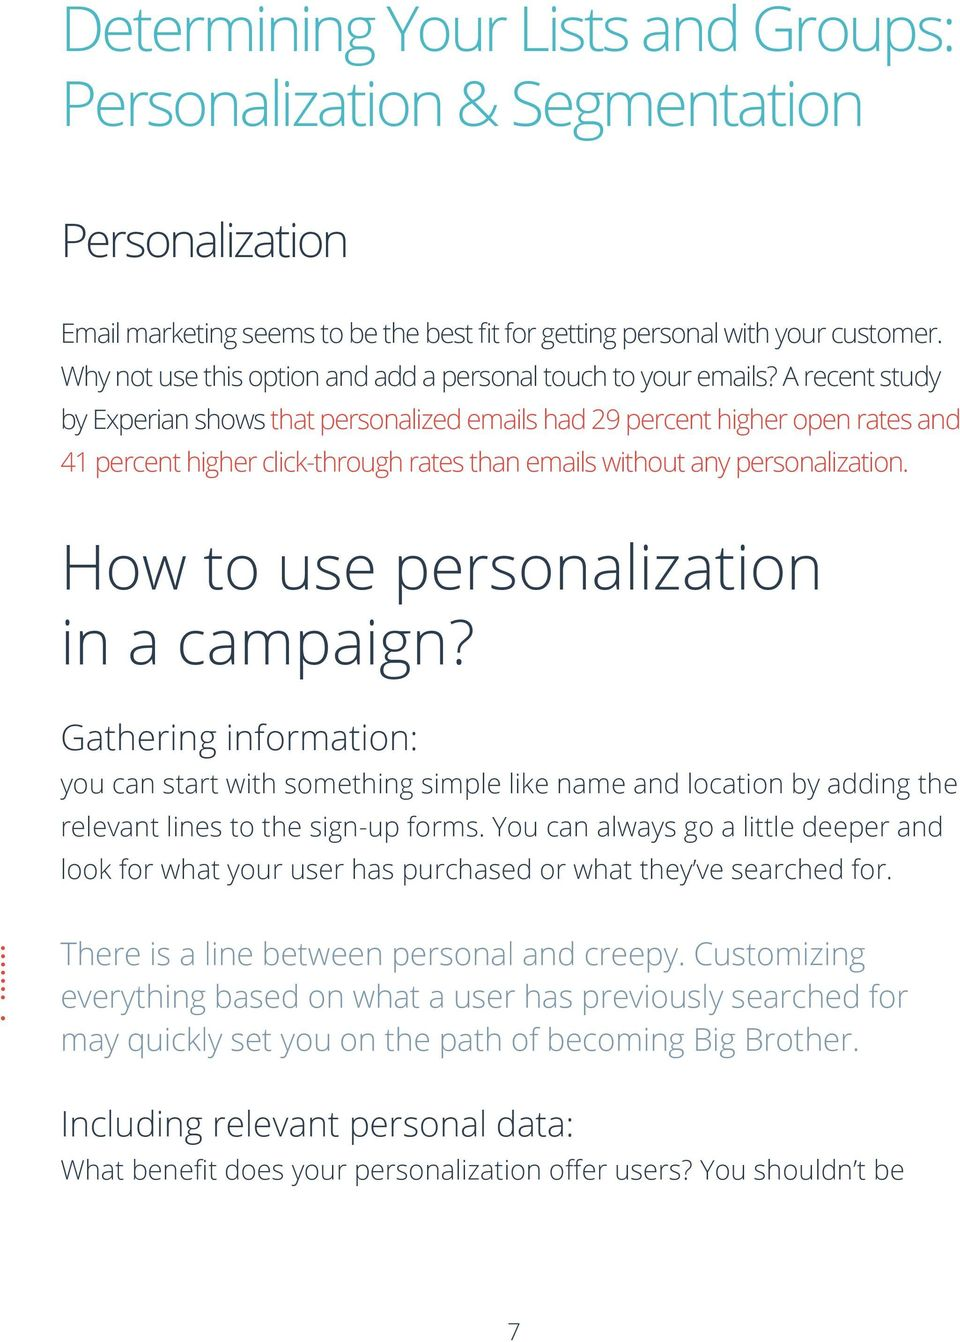 A recent study by Experian shows that personalized emails had 29 percent higher open rates and 41 percent higher click-through rates than emails without any personalization.